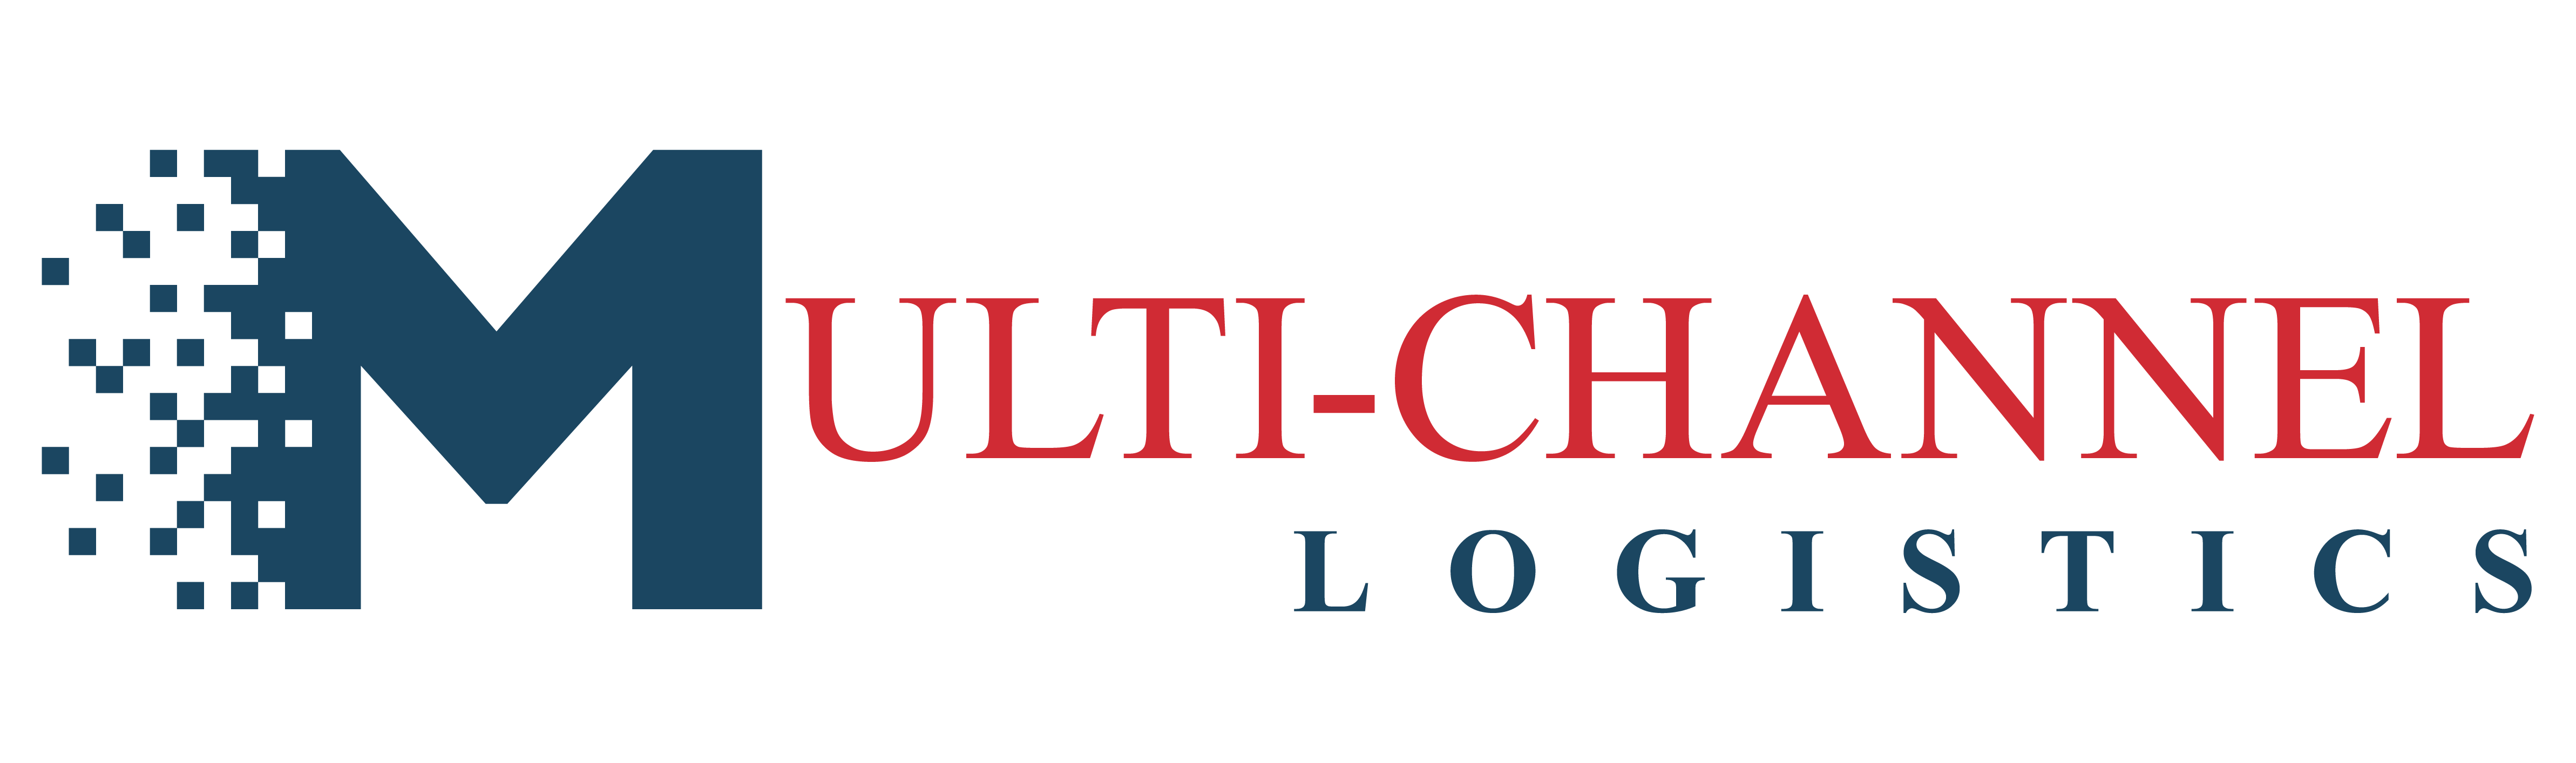 www.multi-channellogistics.com